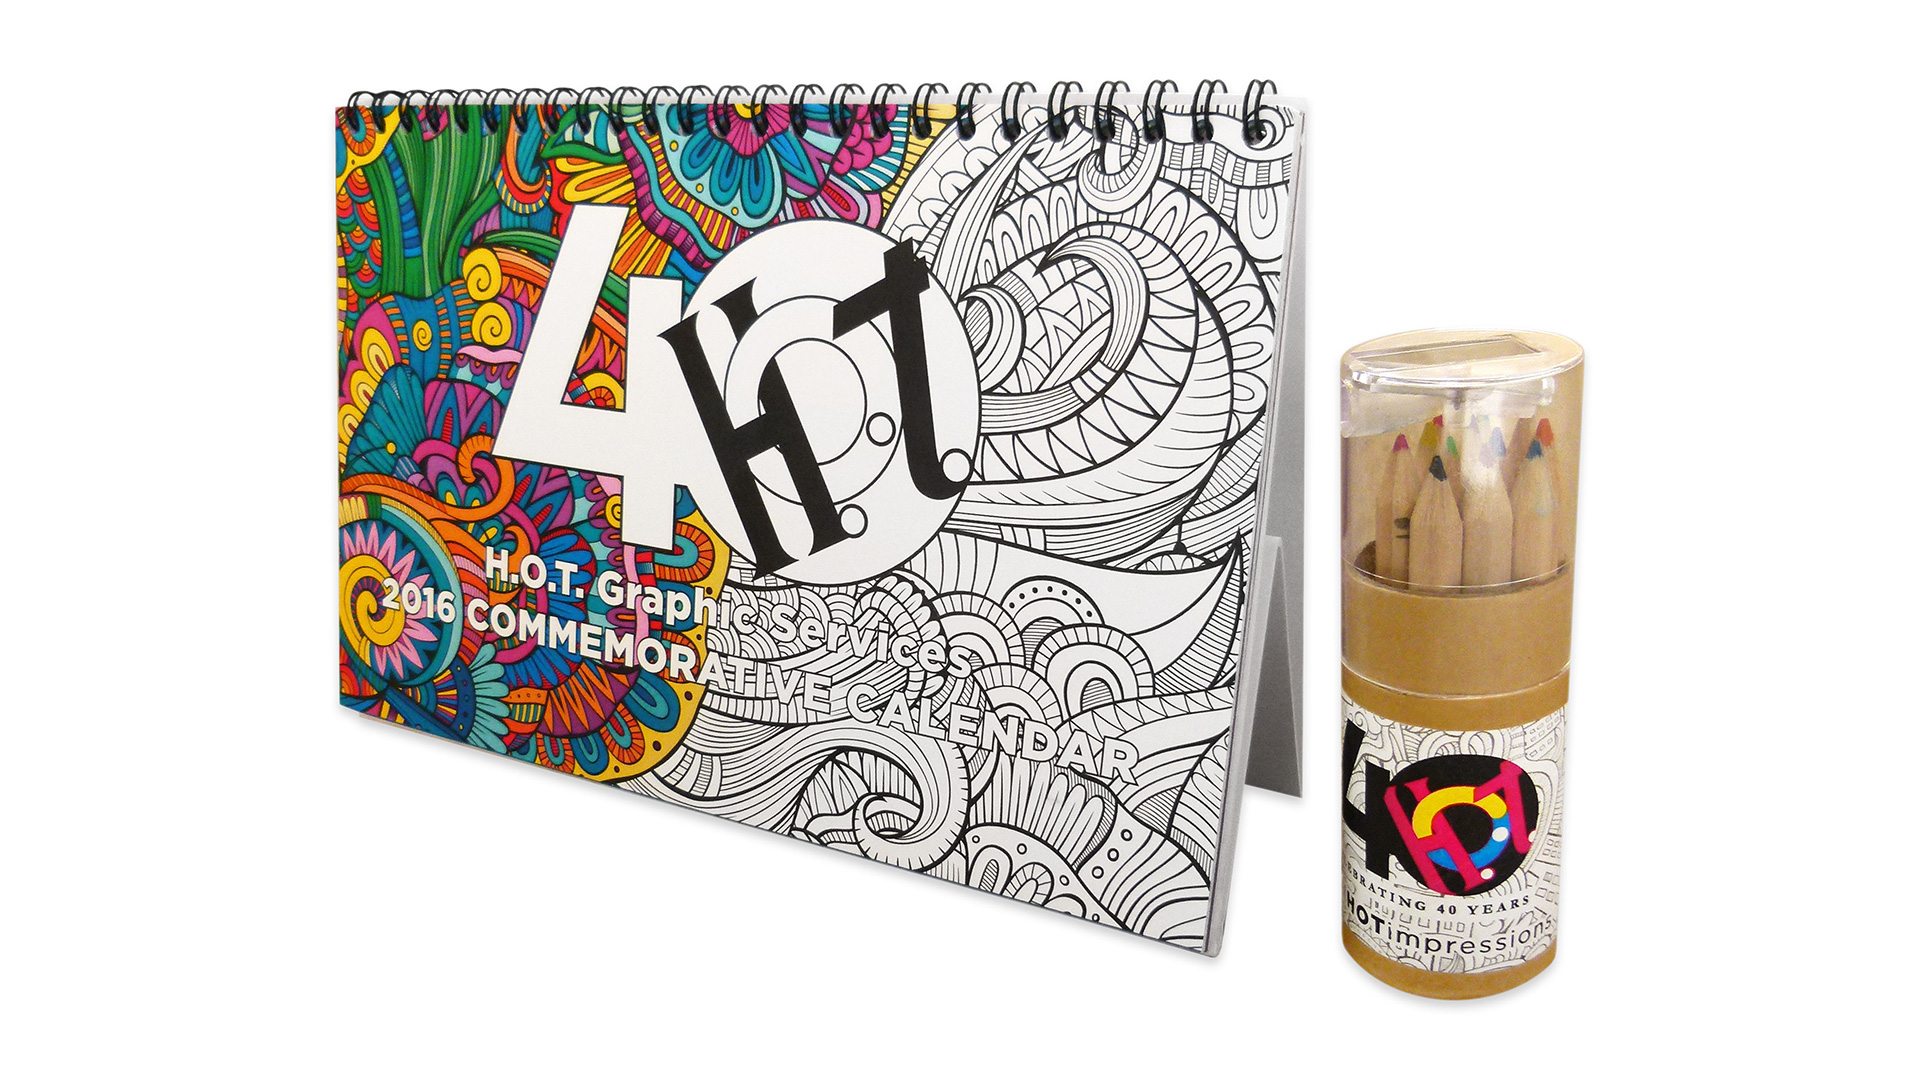 H.O.T. Commemorative 40th Anniversary Calendar - PaperSpecs